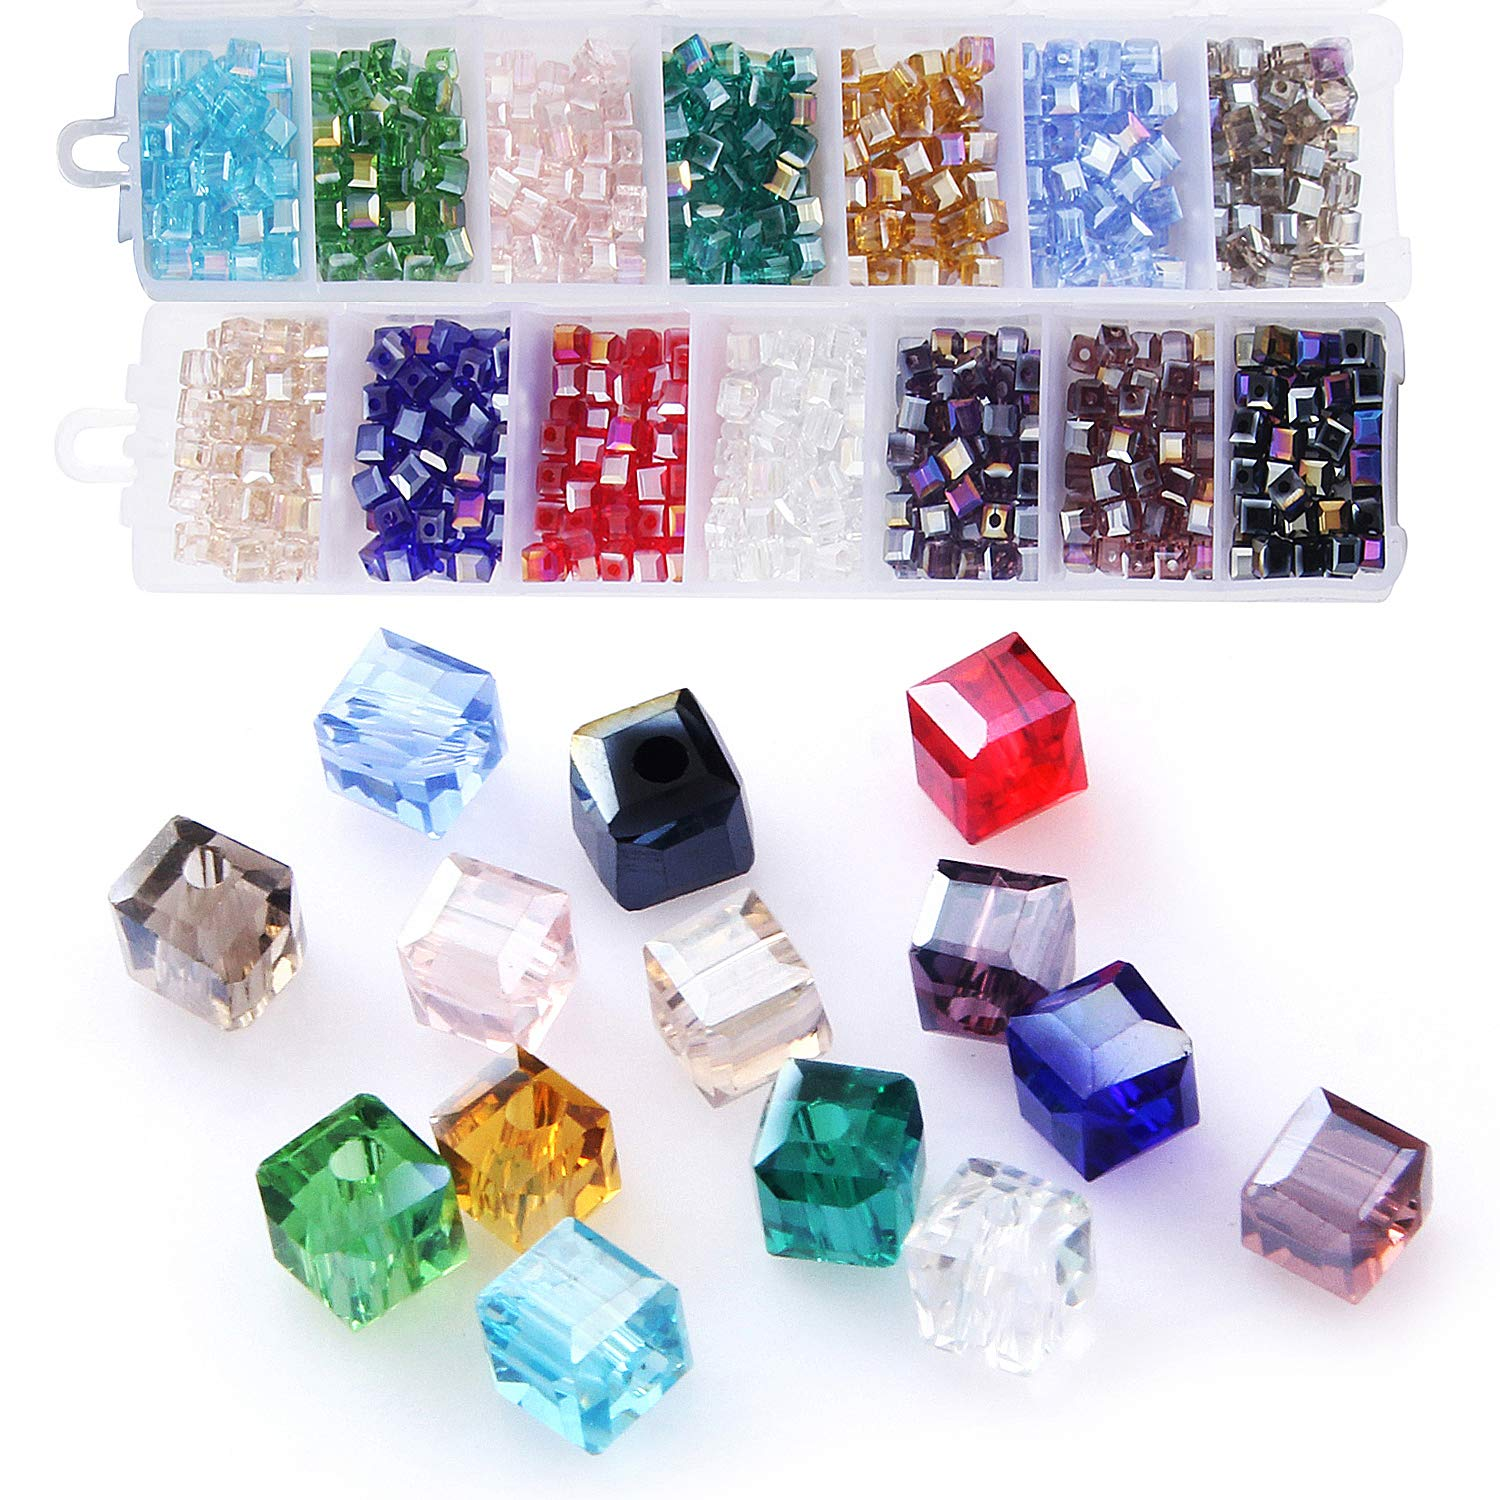 Cube Crystal Glass Beads, Wholesale Crystals Beading (Similar Cut #5601) Faceted Square Shape 4mm Lot 700pcs 14 Colors with Free Container Box,ZHUBI by ZHUBI